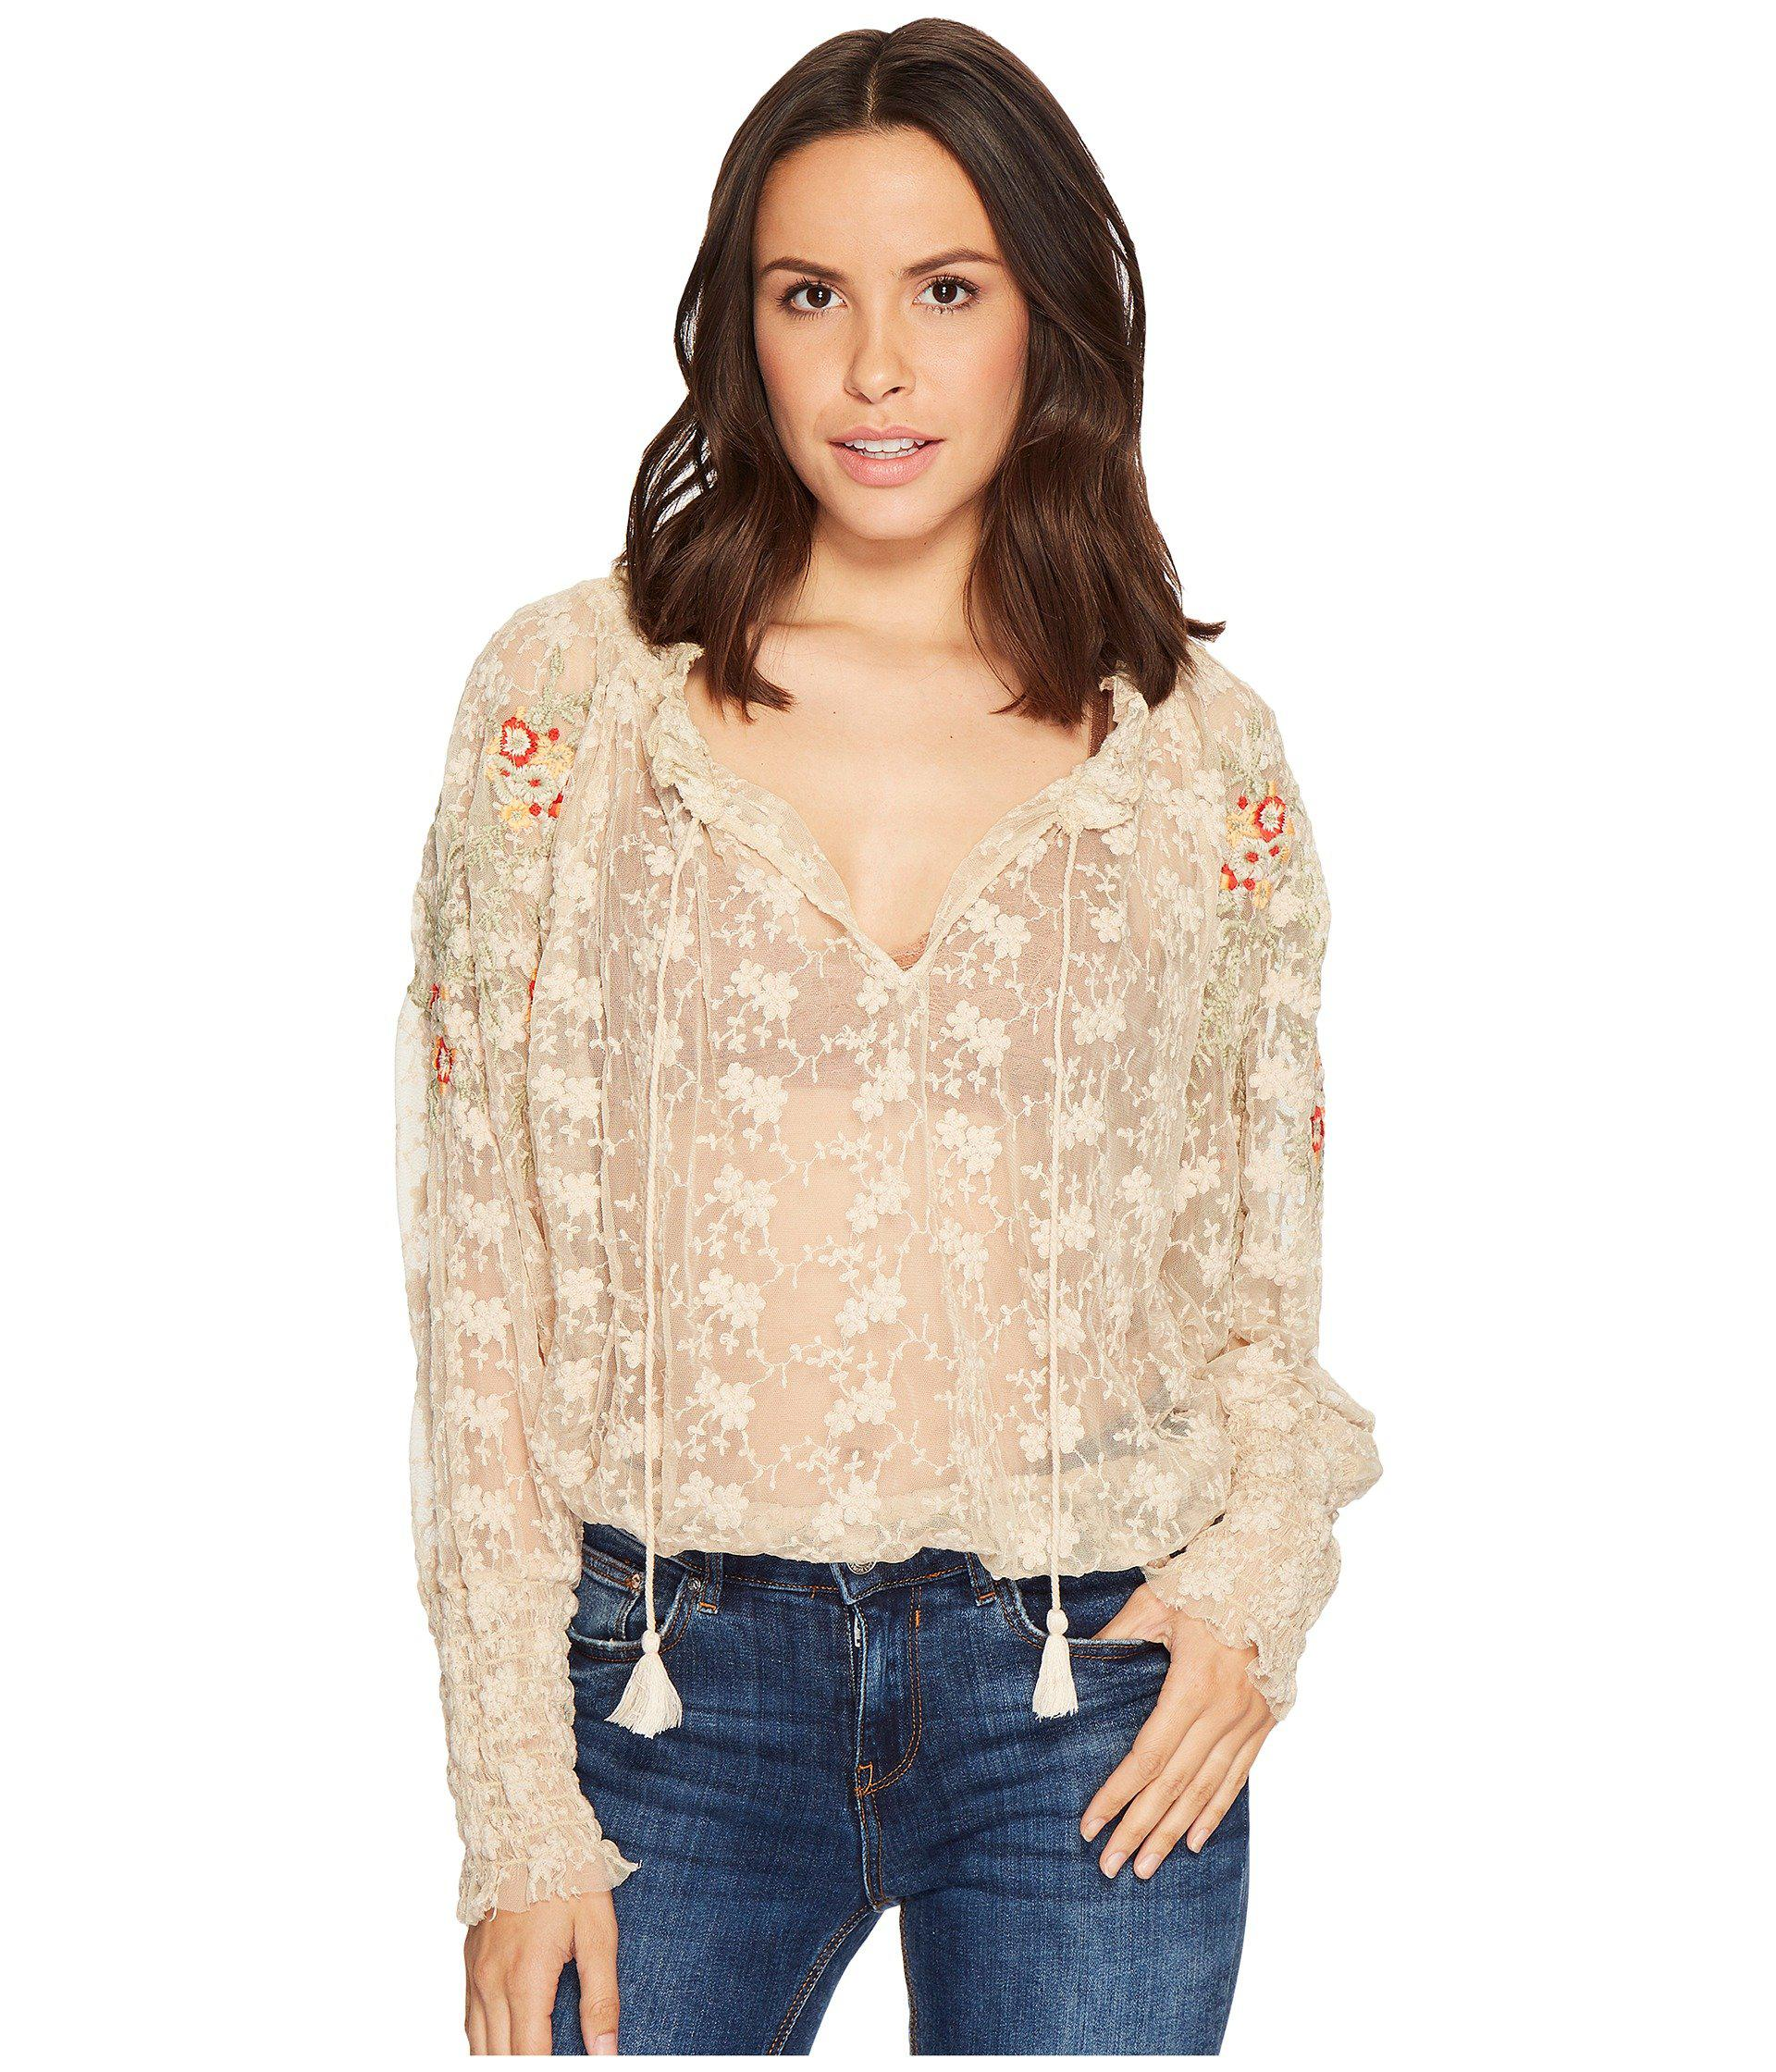 7b315b50642a Lyst - Free People Jubilee Top in White - Save 35%